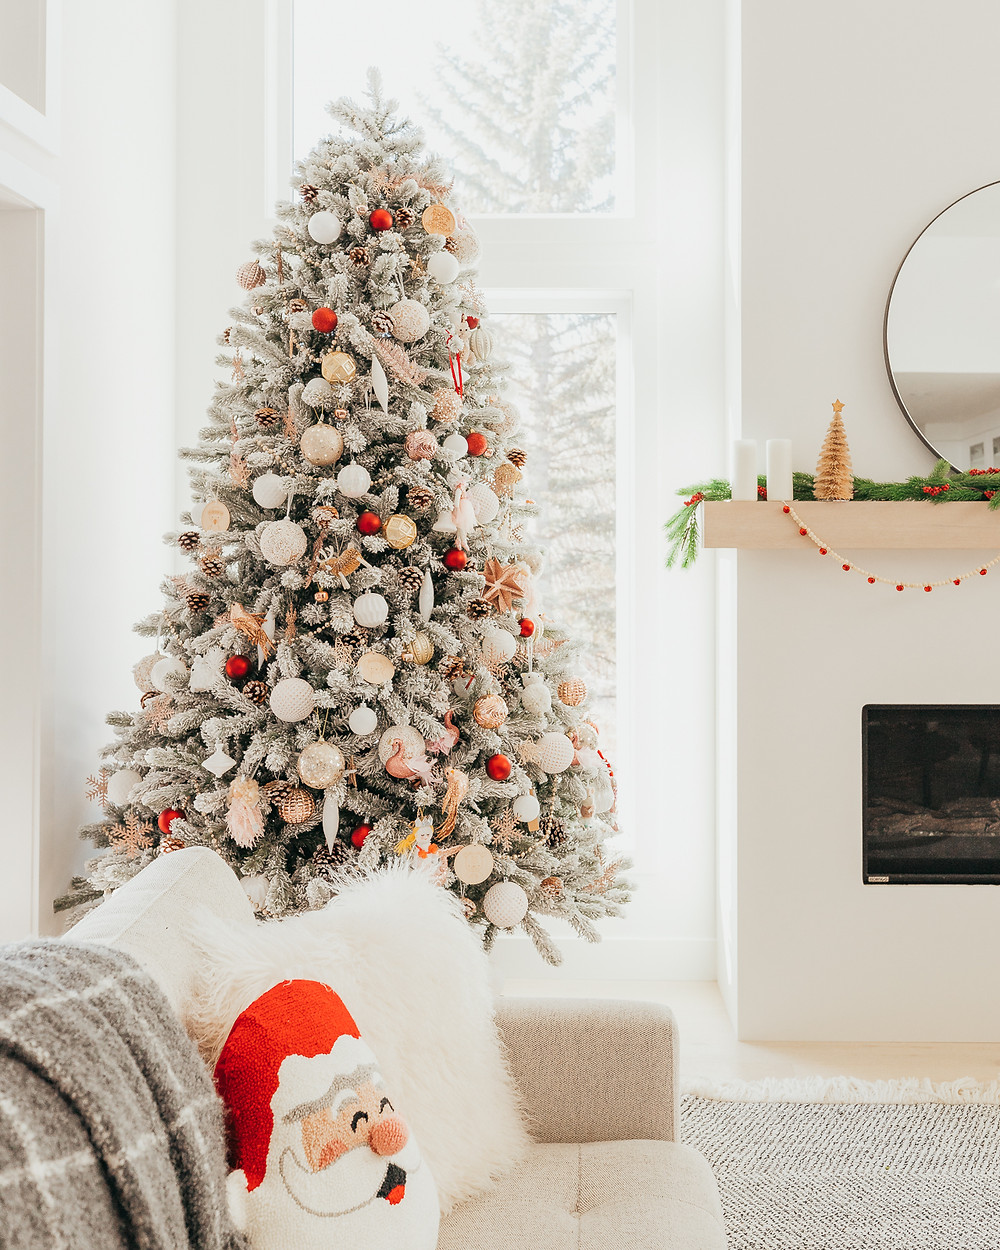 A giant flocked christmas tree decorated with modern blush and red christmas holiday ornaments in a minimal Scandinavian style sits next to a large window in a bright white modern living room with a linear fireplace and. a mantel decorated for the holidays.